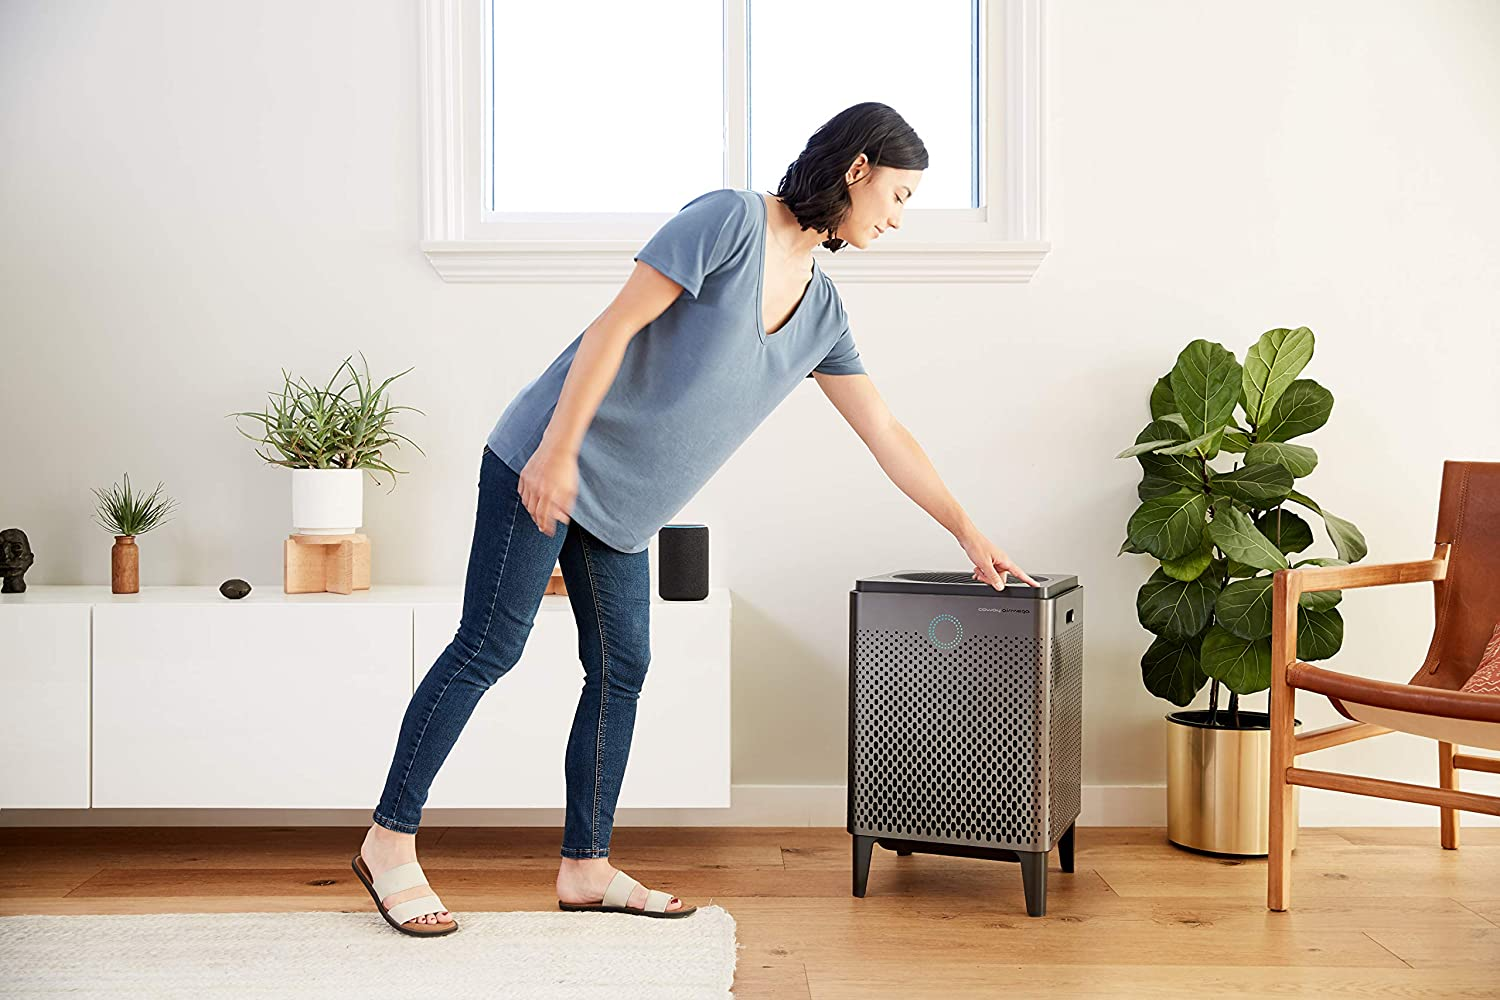 Best Air Purifier For Dust Removal in 2020: Reviews & Buying Guide 11